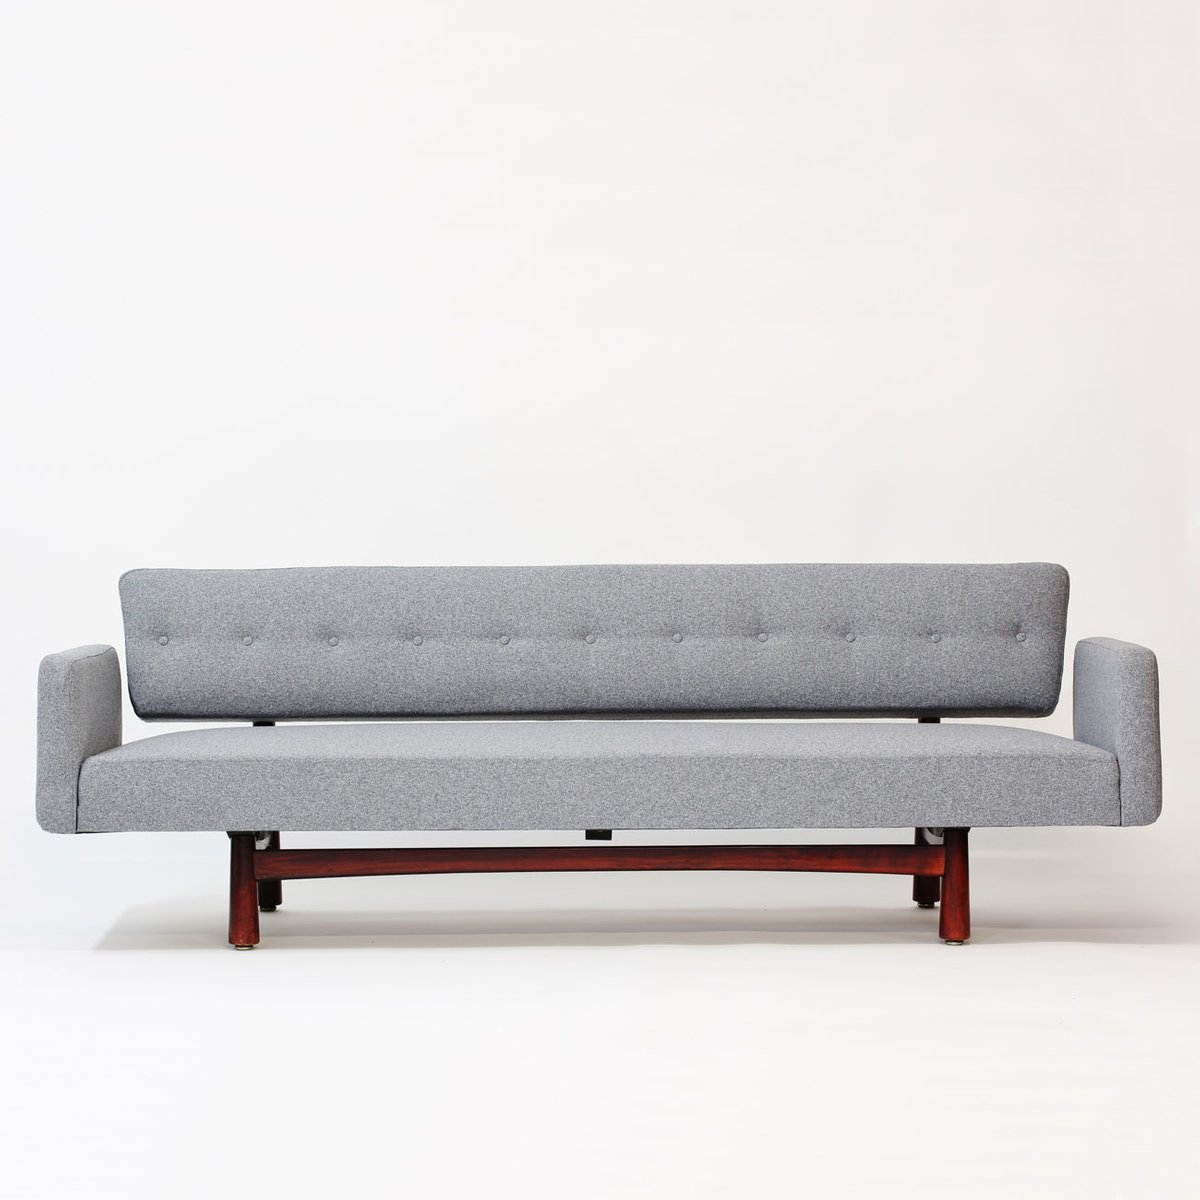 New York Sofa By Edward Wormley For Ljungs Industrier/DUX, 1950s